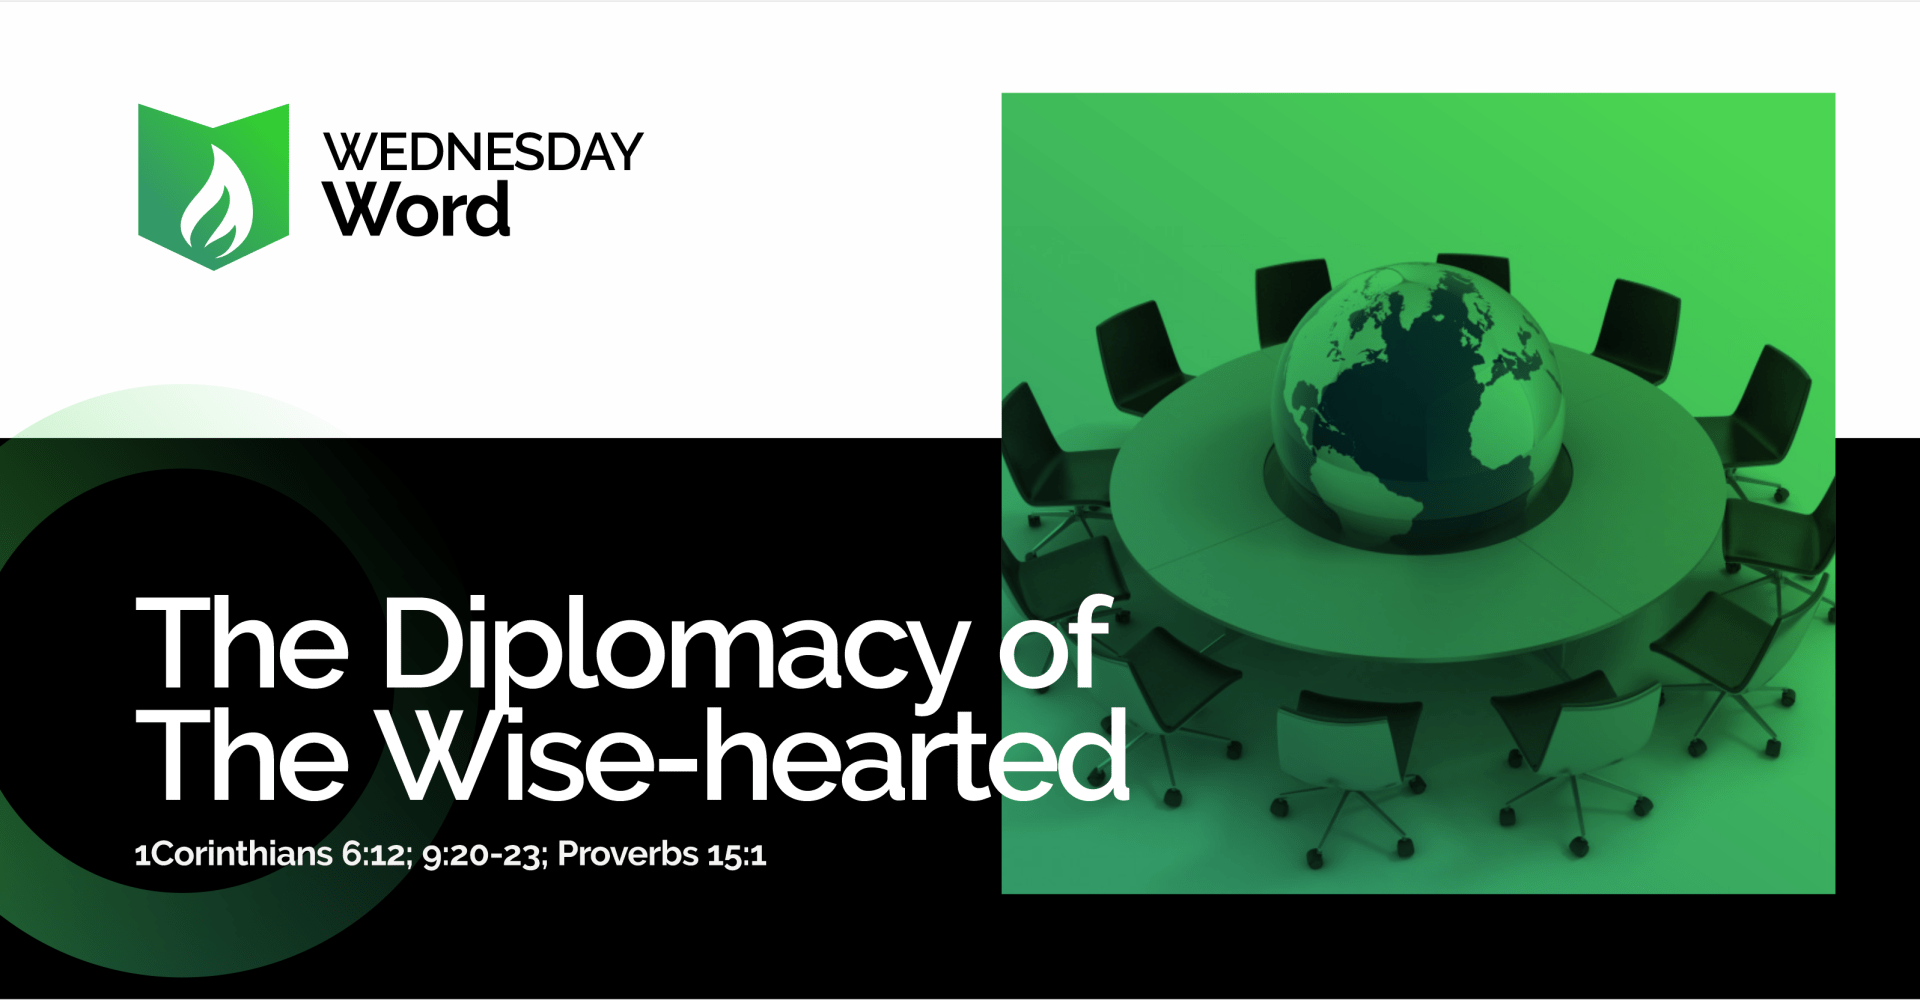 The diplomacy of the wise-hearted